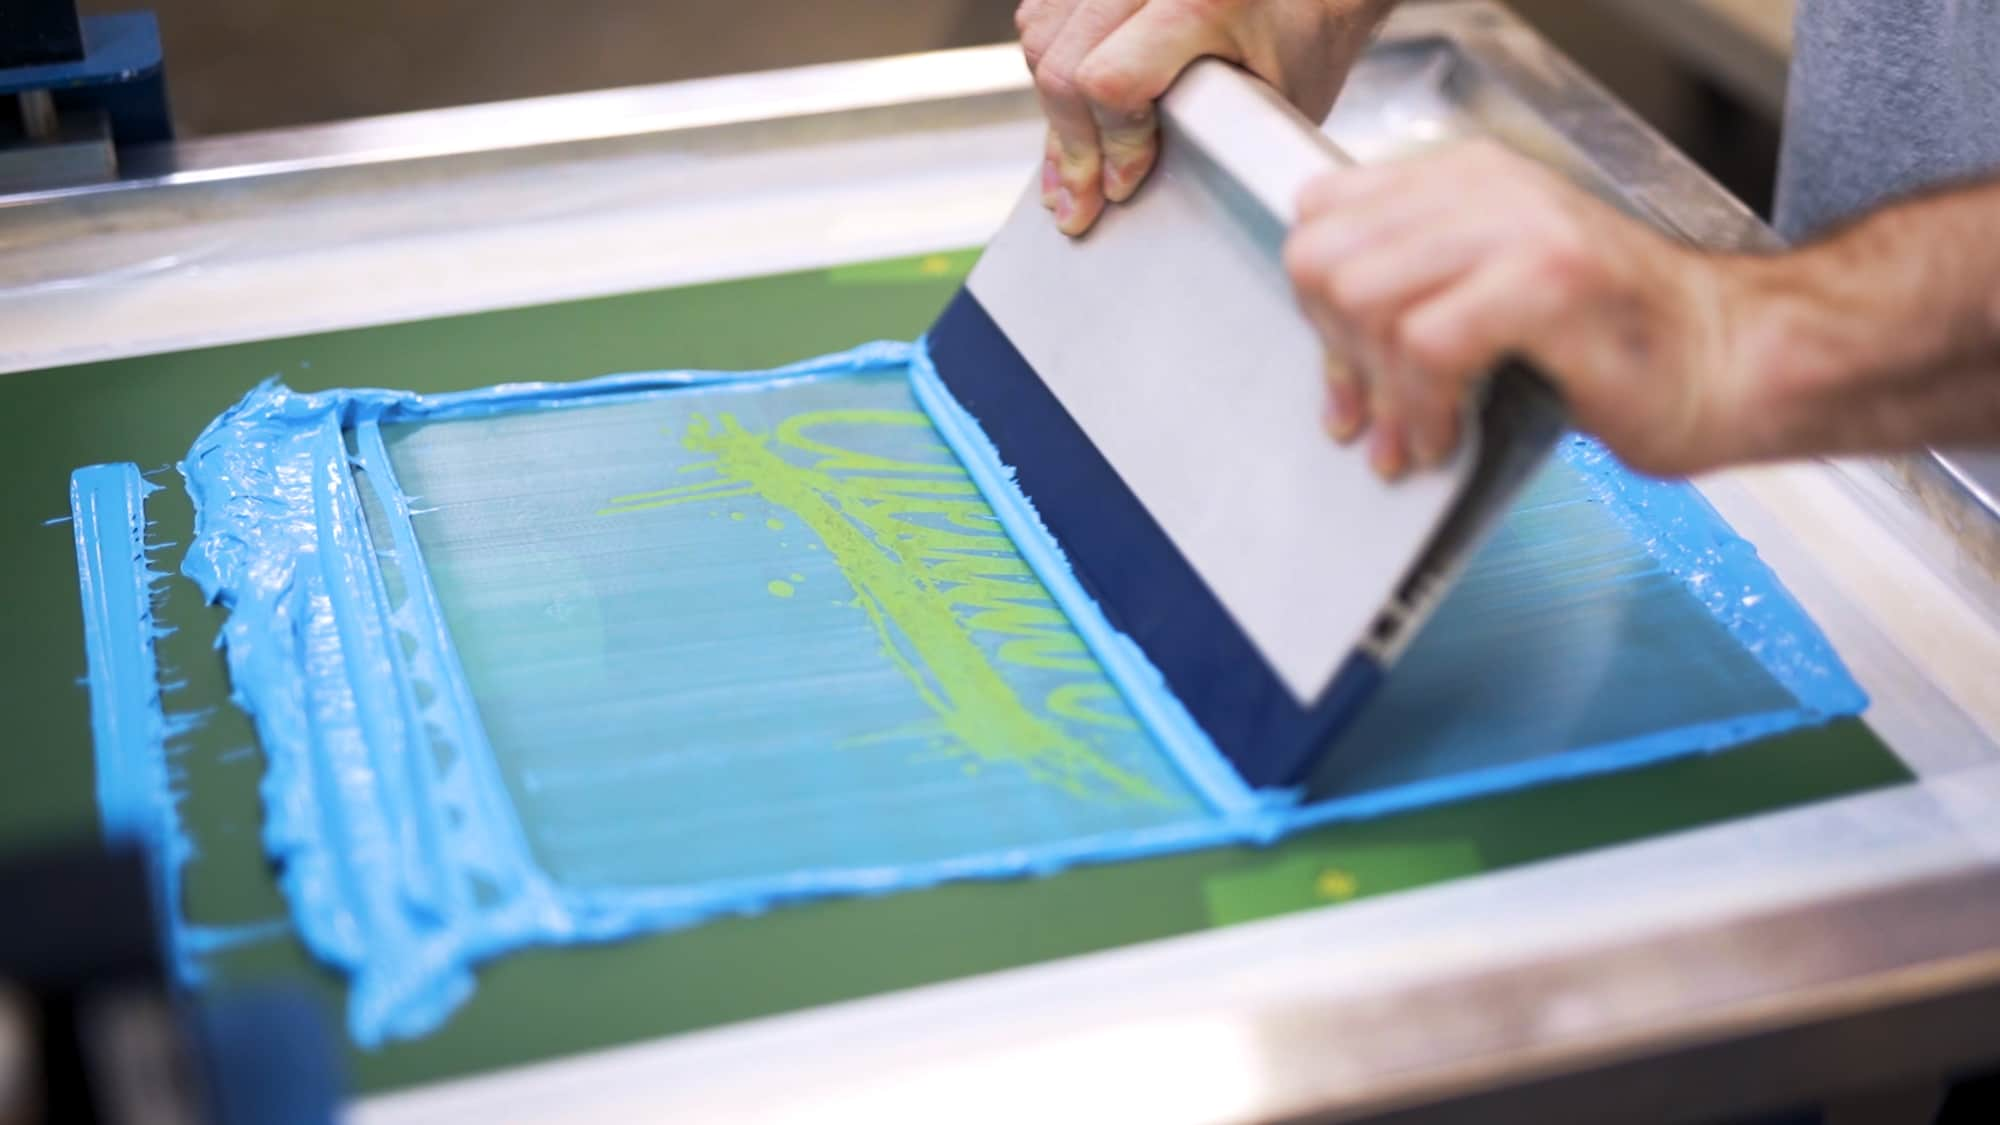 Manually pushing a screen printing squeegee.